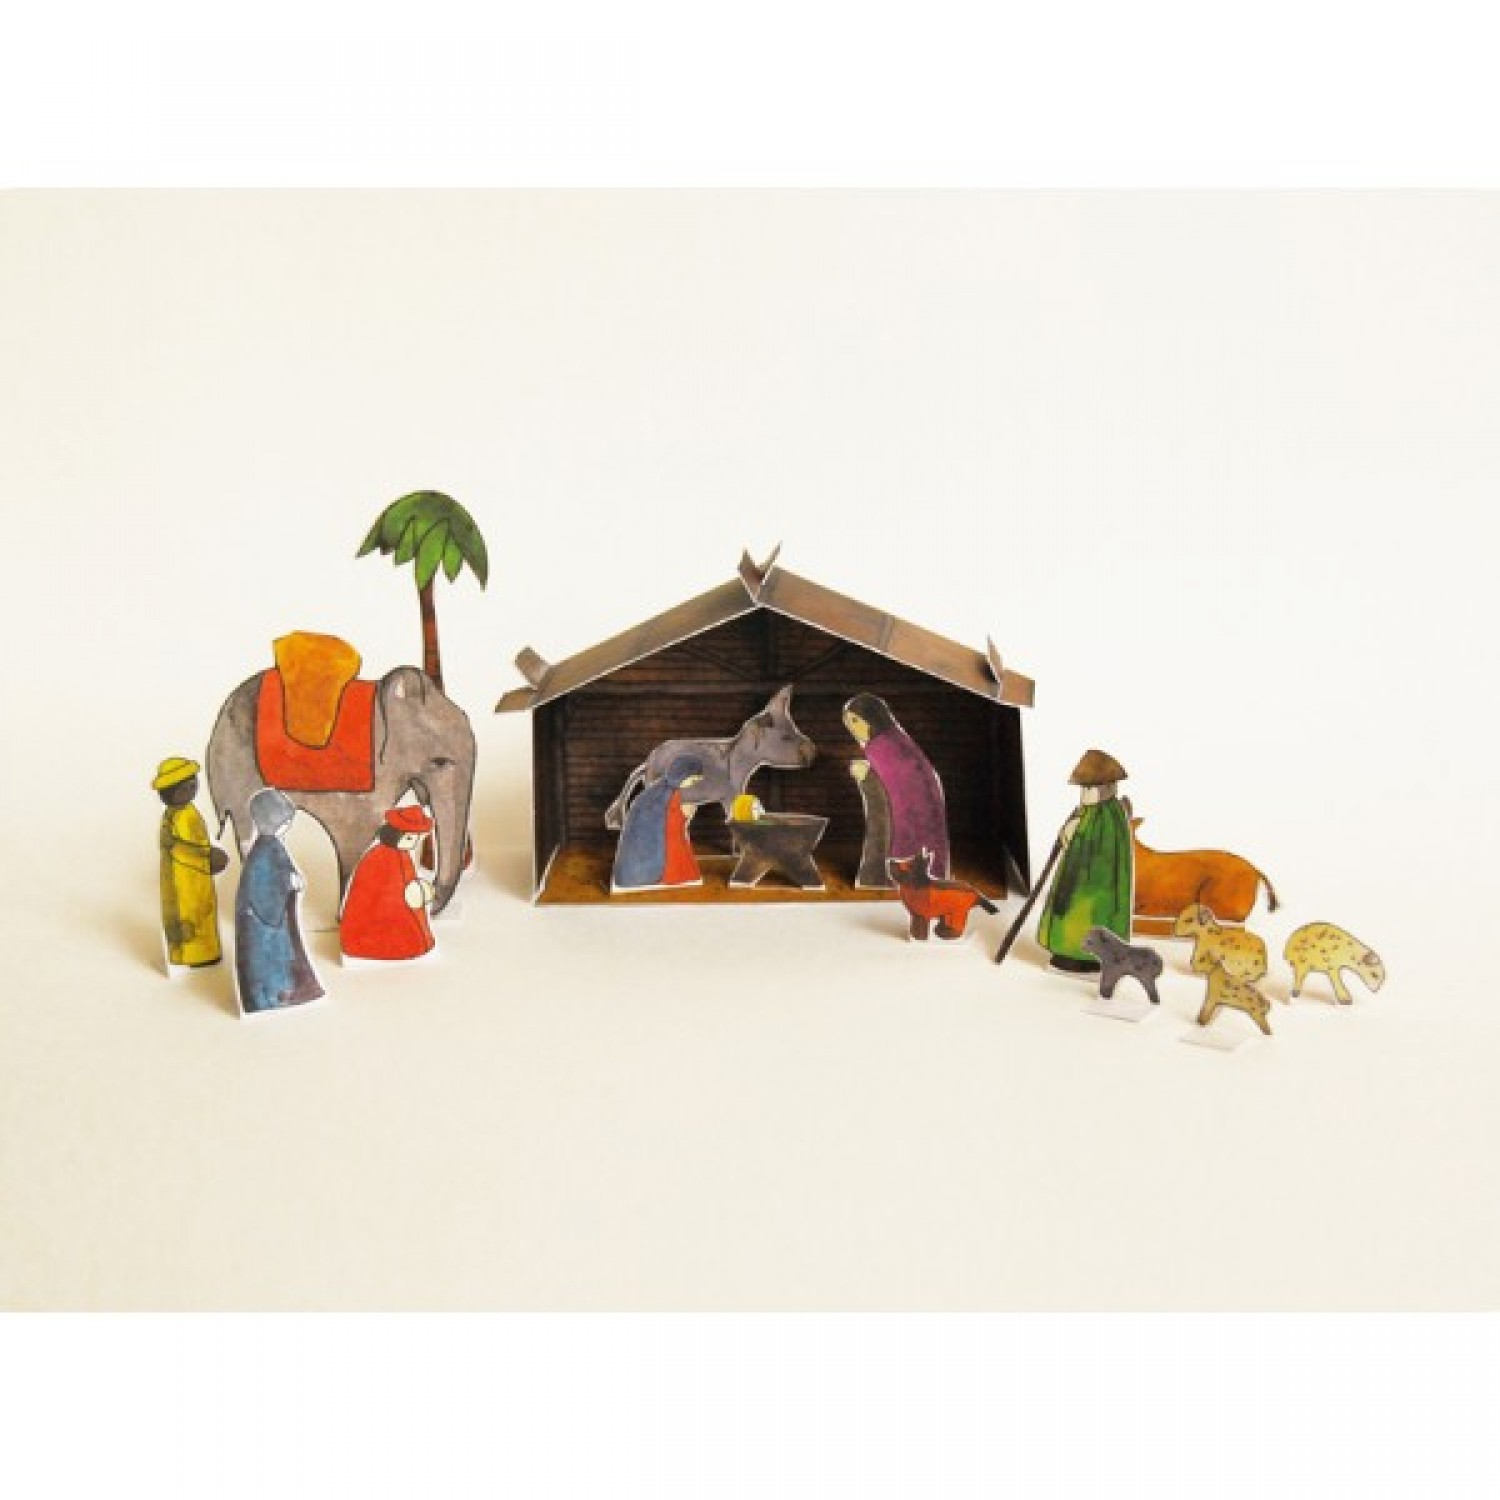 Nativity scene – construction paper